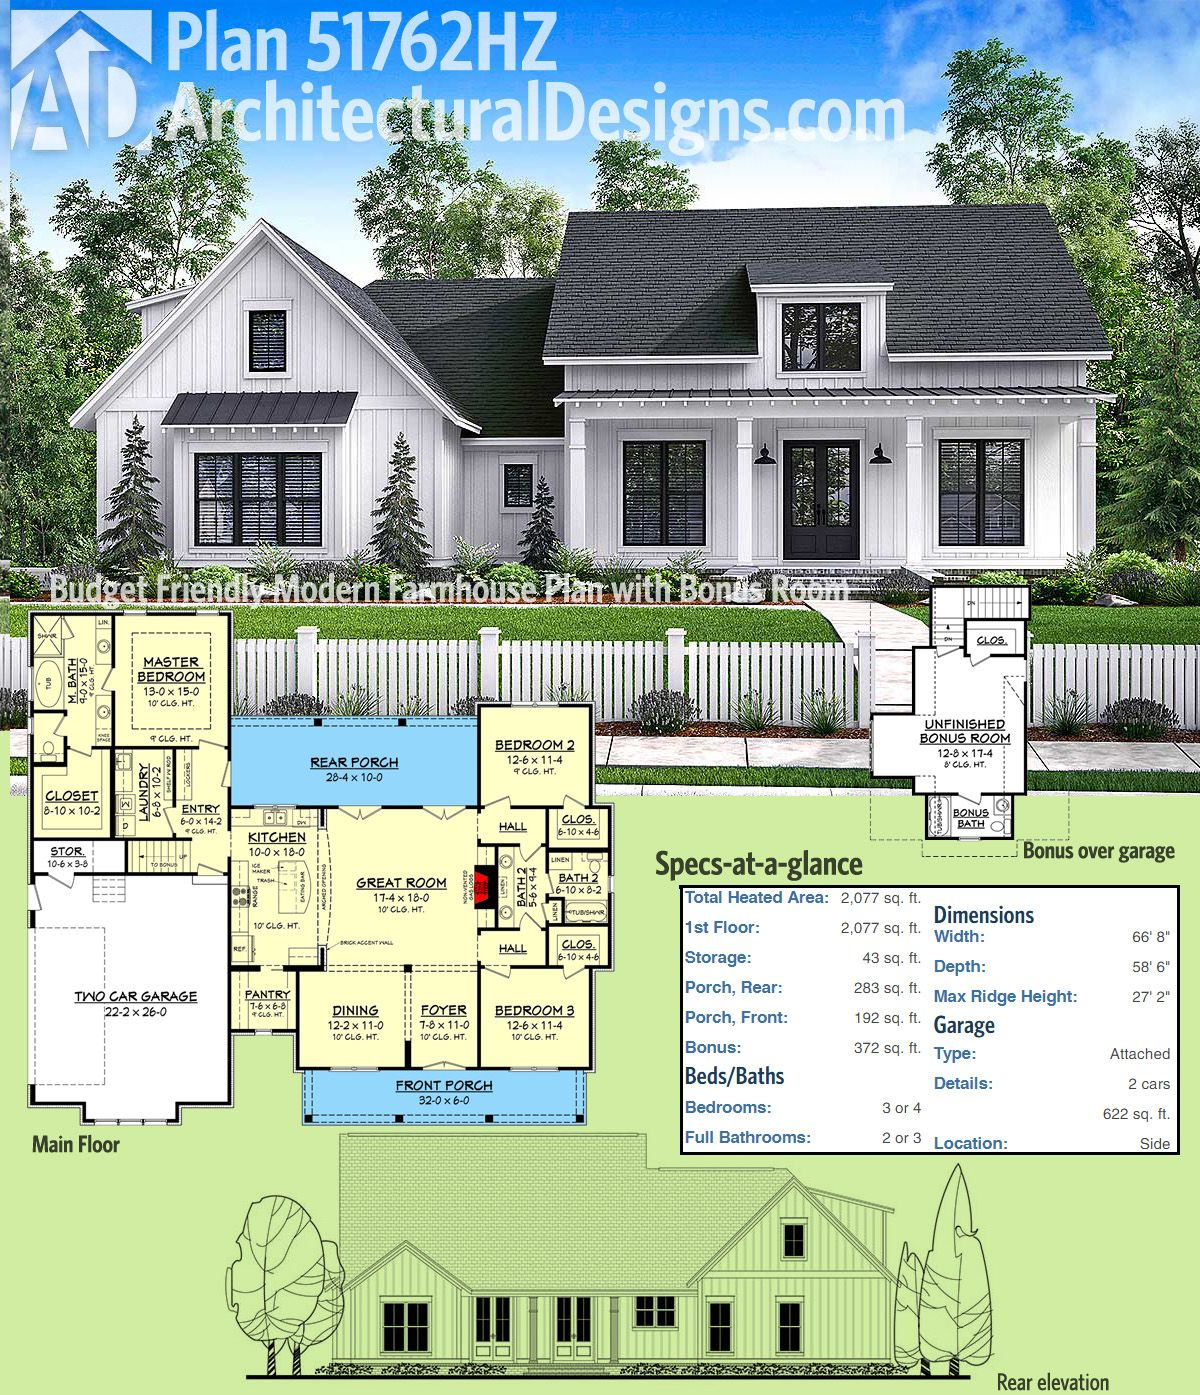 Plan 51762hz budget friendly modern farmhouse plan with for Modern farmhouse floor plans